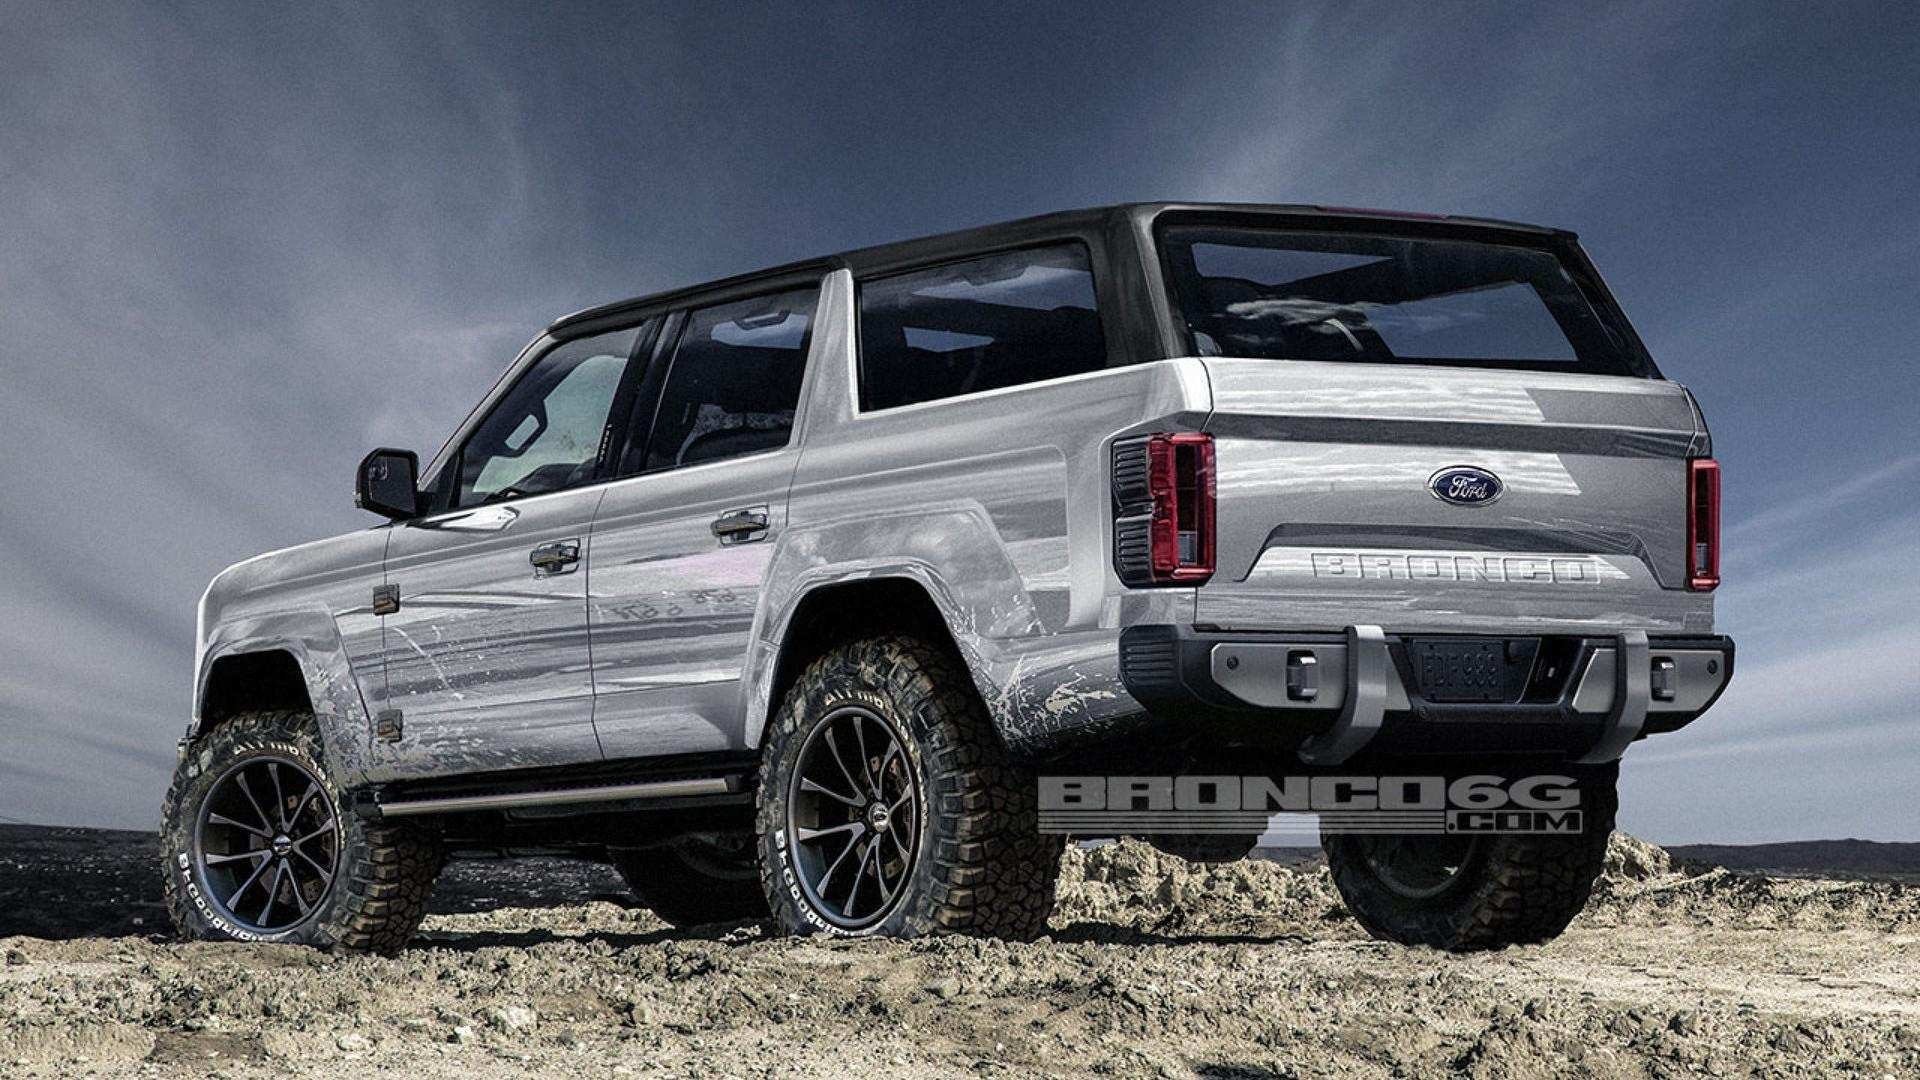 73 The Best 2020 Ford Bronco Msrp Price And Review